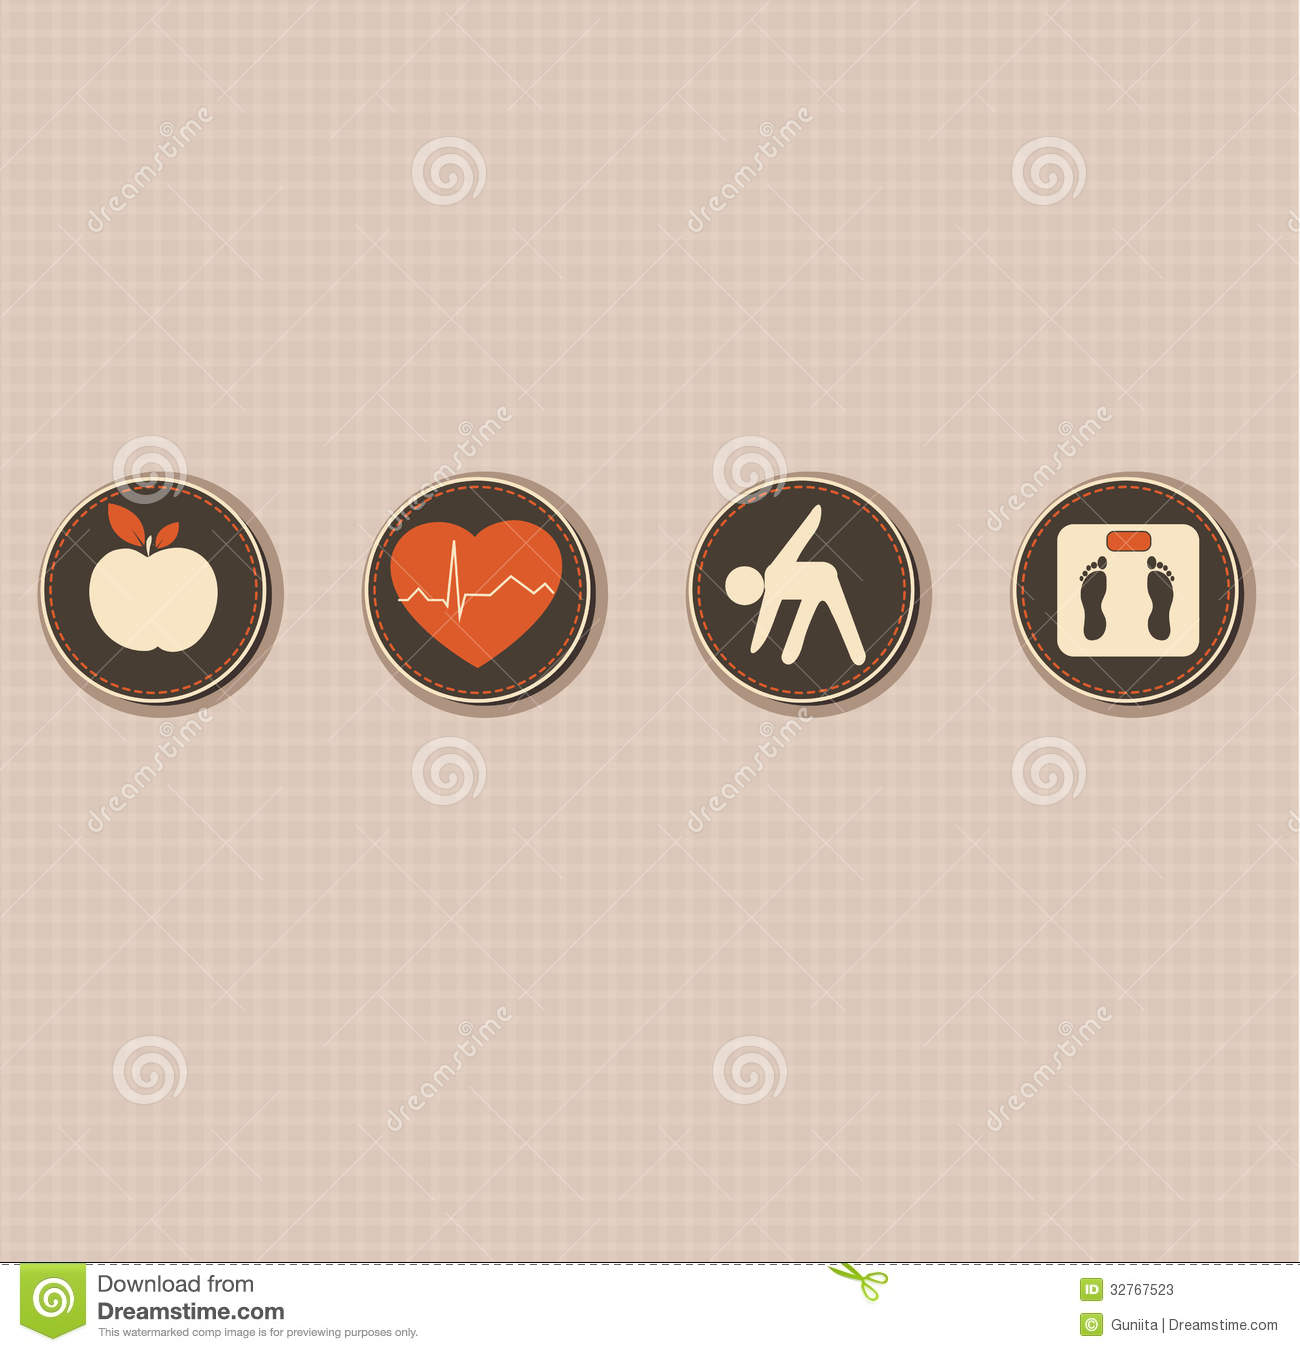 Lifestyle: Healthy Lifestyle Symbols Stock Vector. Illustration Of